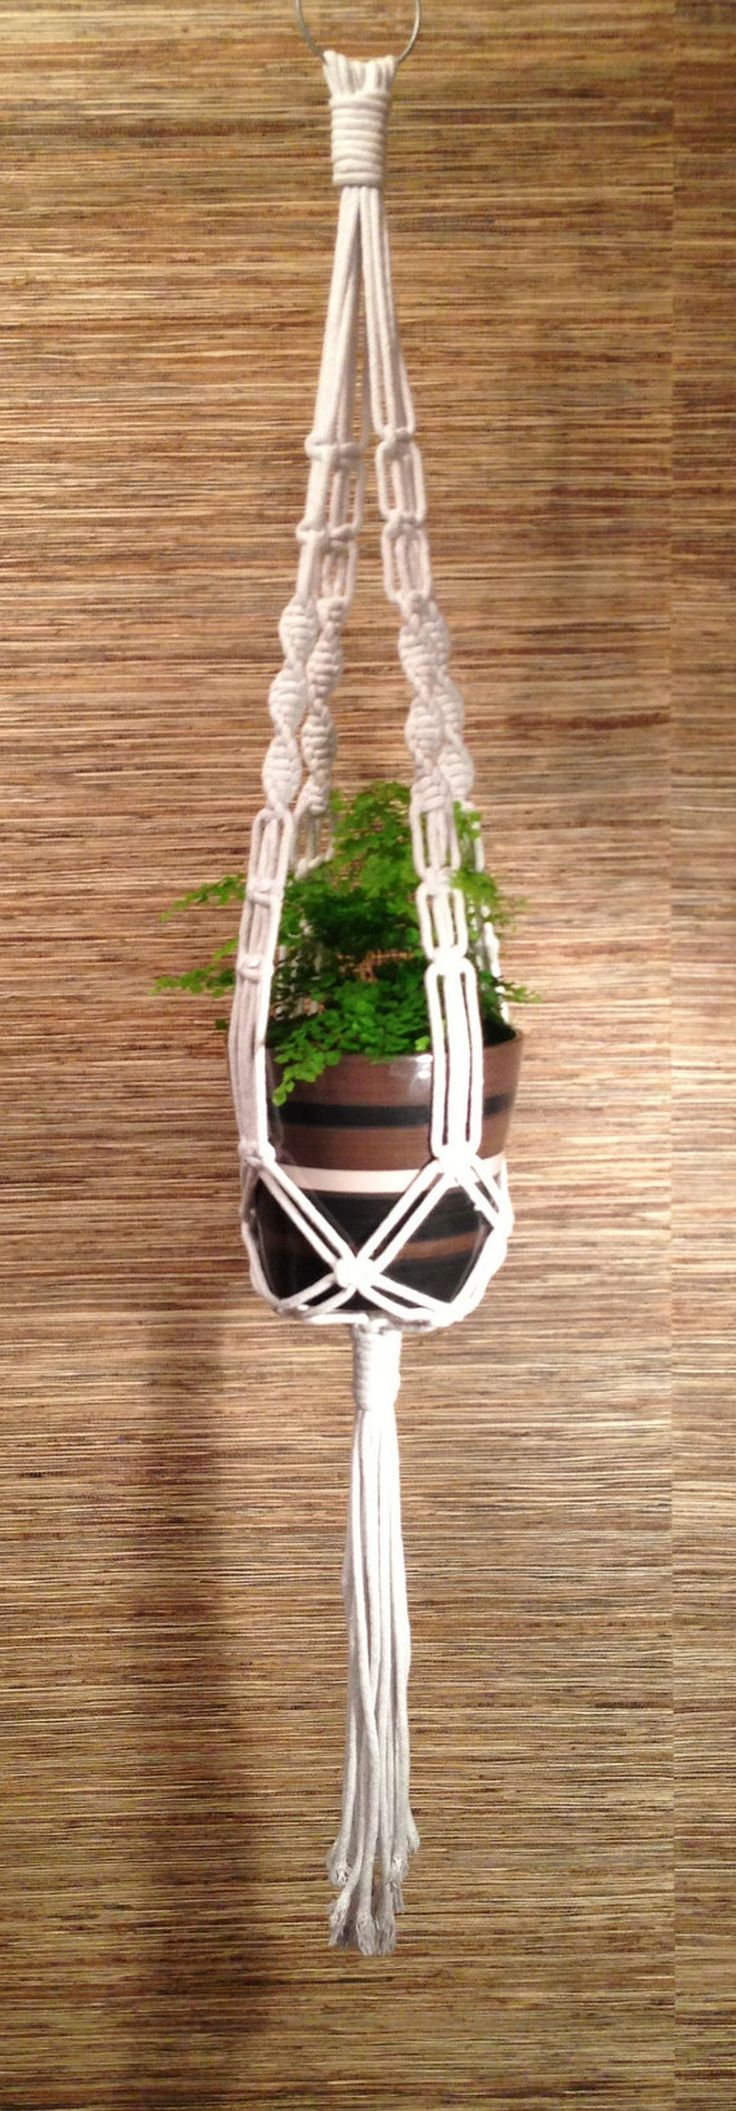 how to make a macrame plant hanger best 25 macrame plant hangers ideas on 852